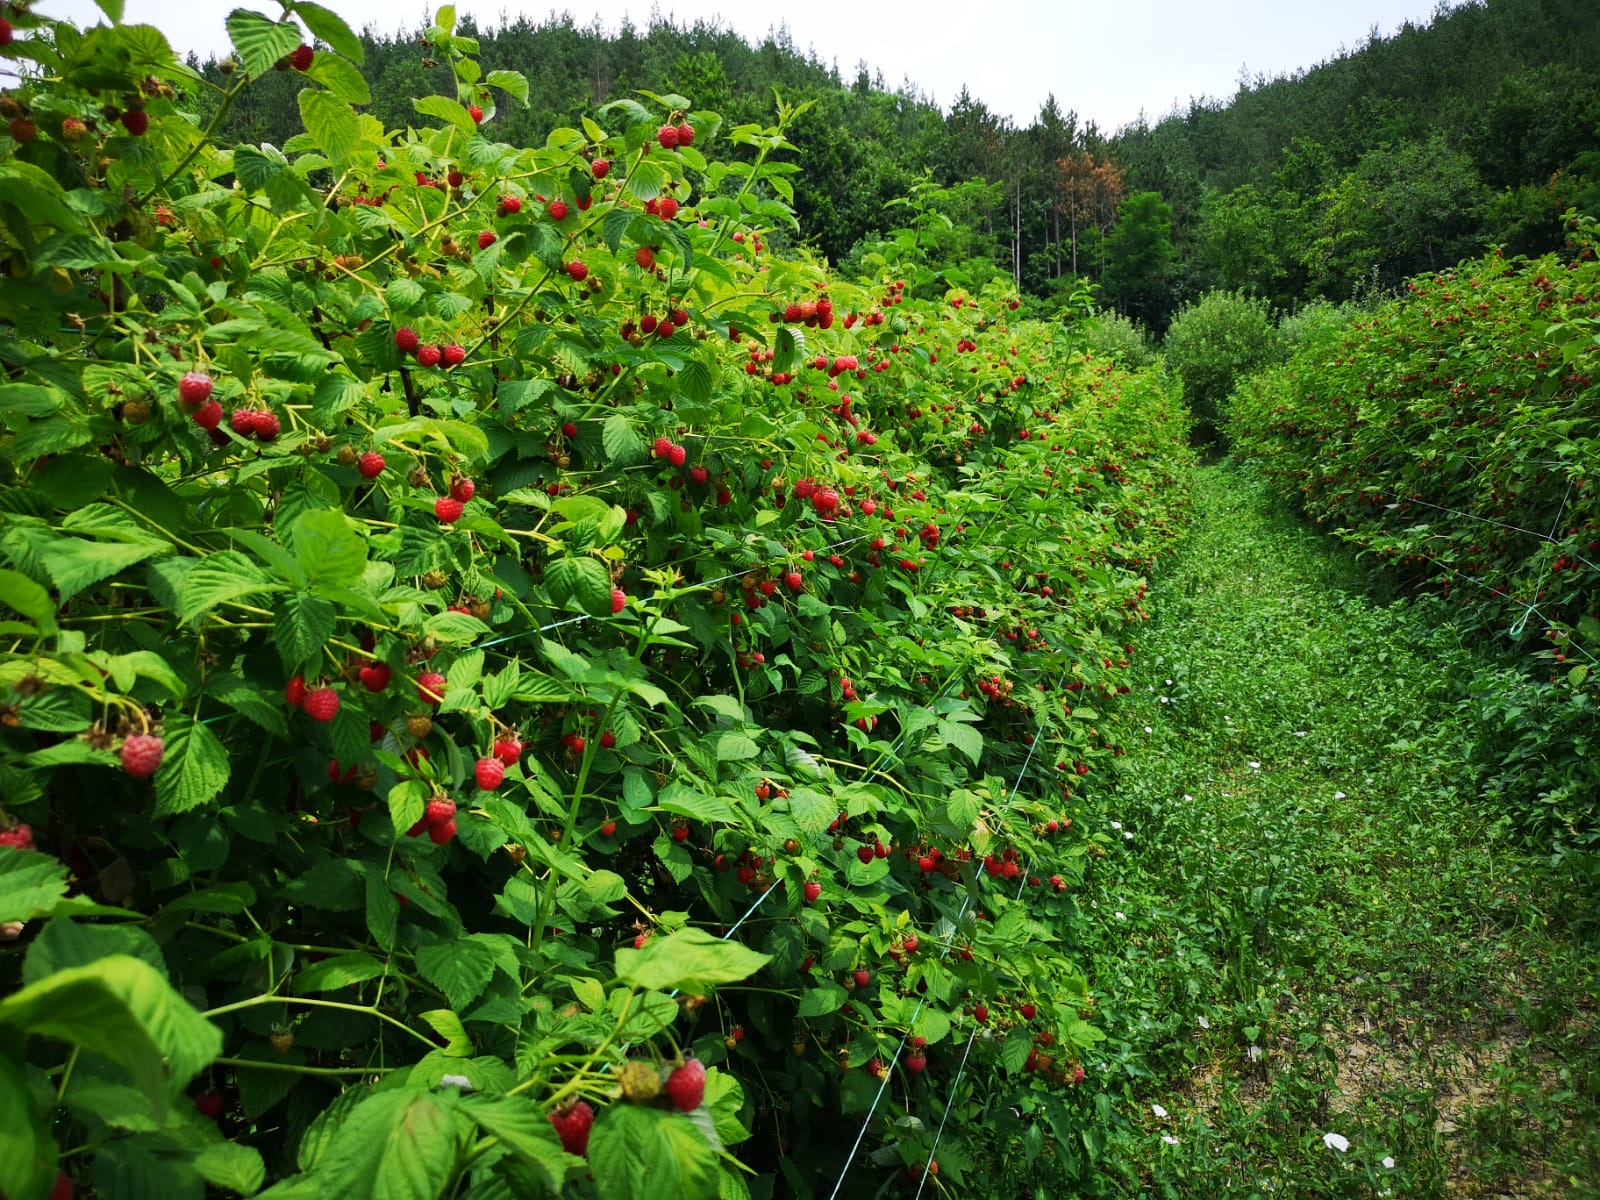 Raspberry plantations in Serbia